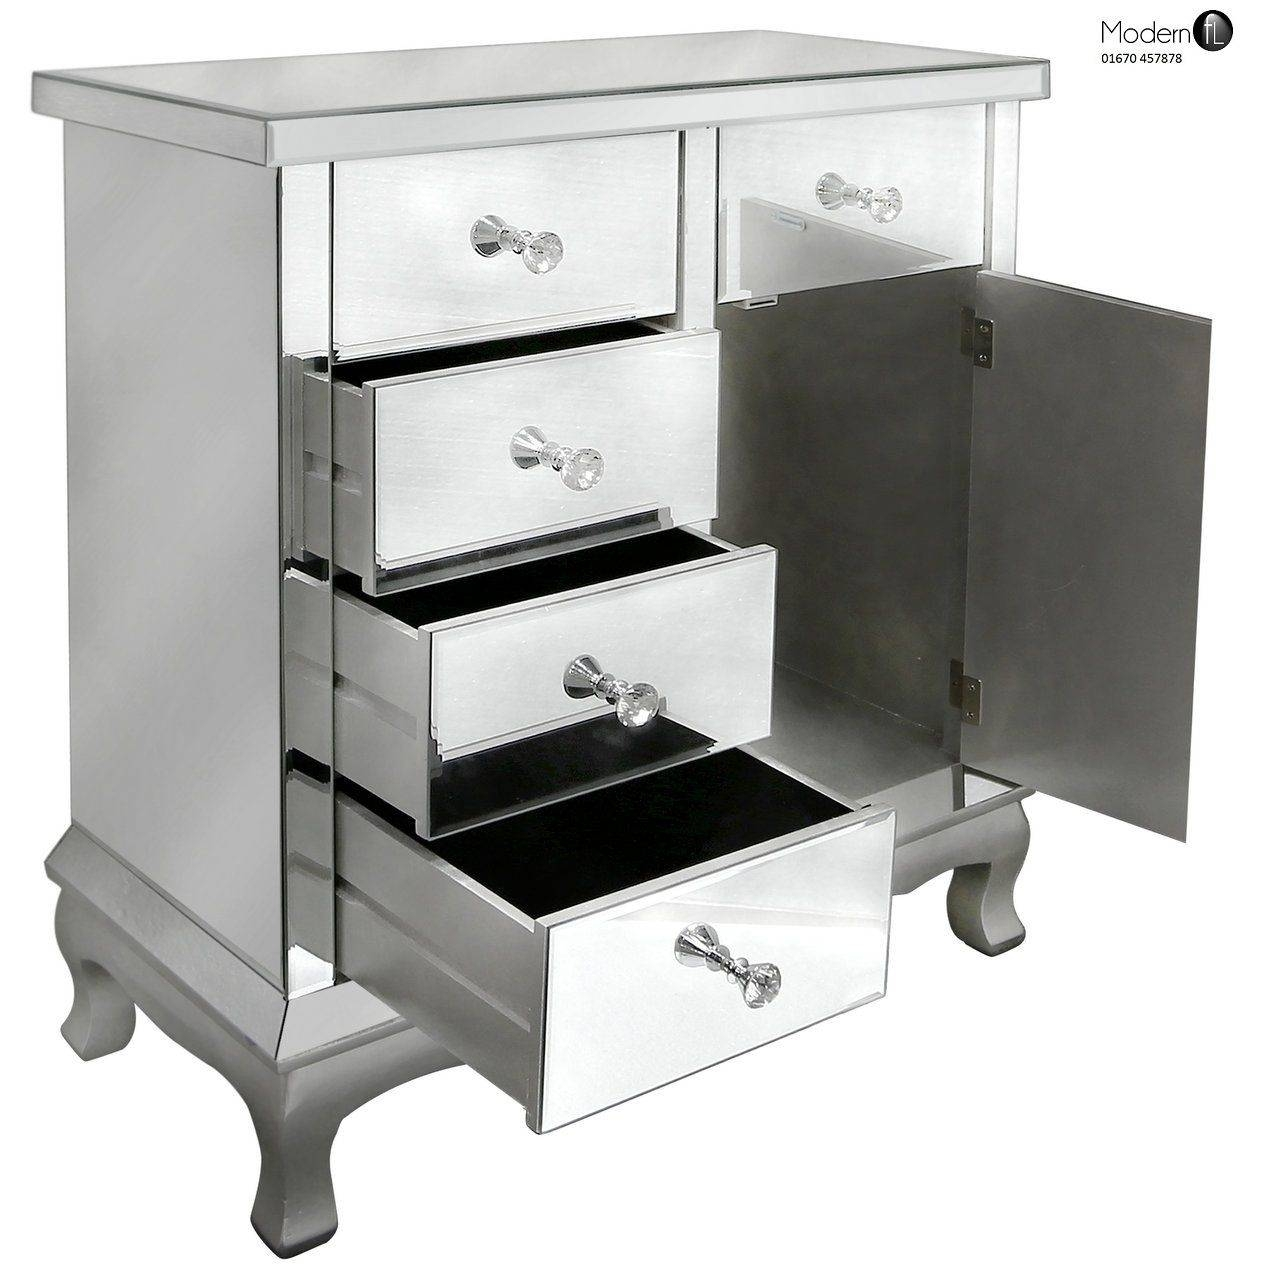 Venetian Mirrored Sideboard With 4 Drawers And 1 Door within White Mirrored Sideboards (Image 27 of 30)